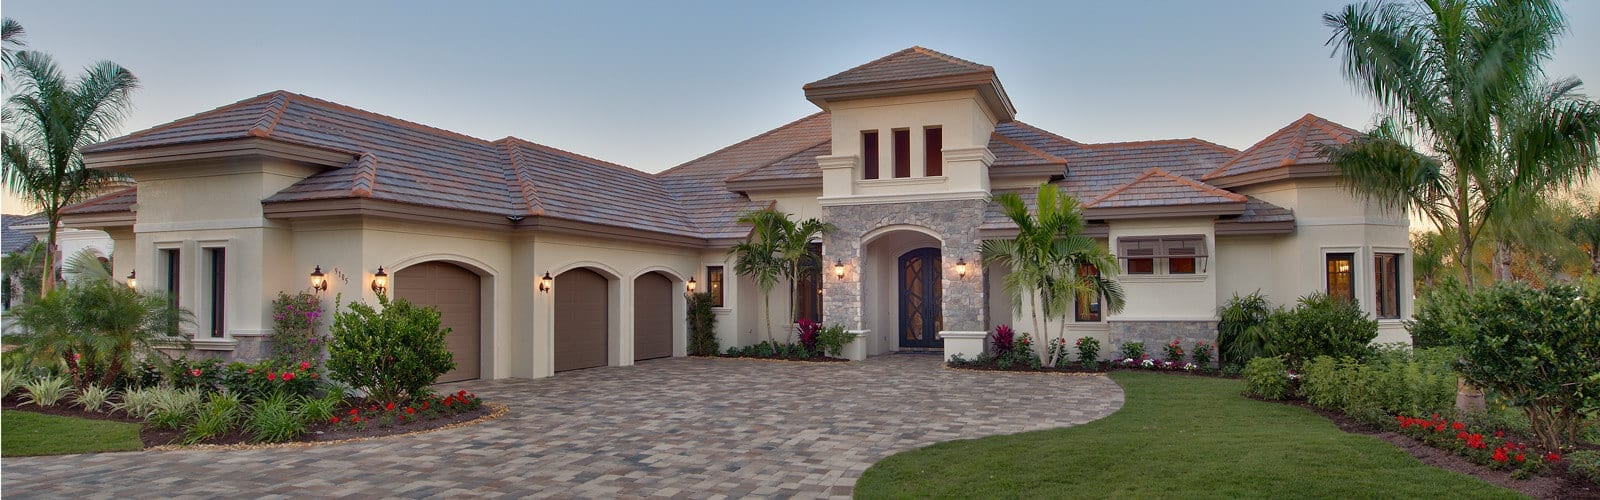 lundstrom homes